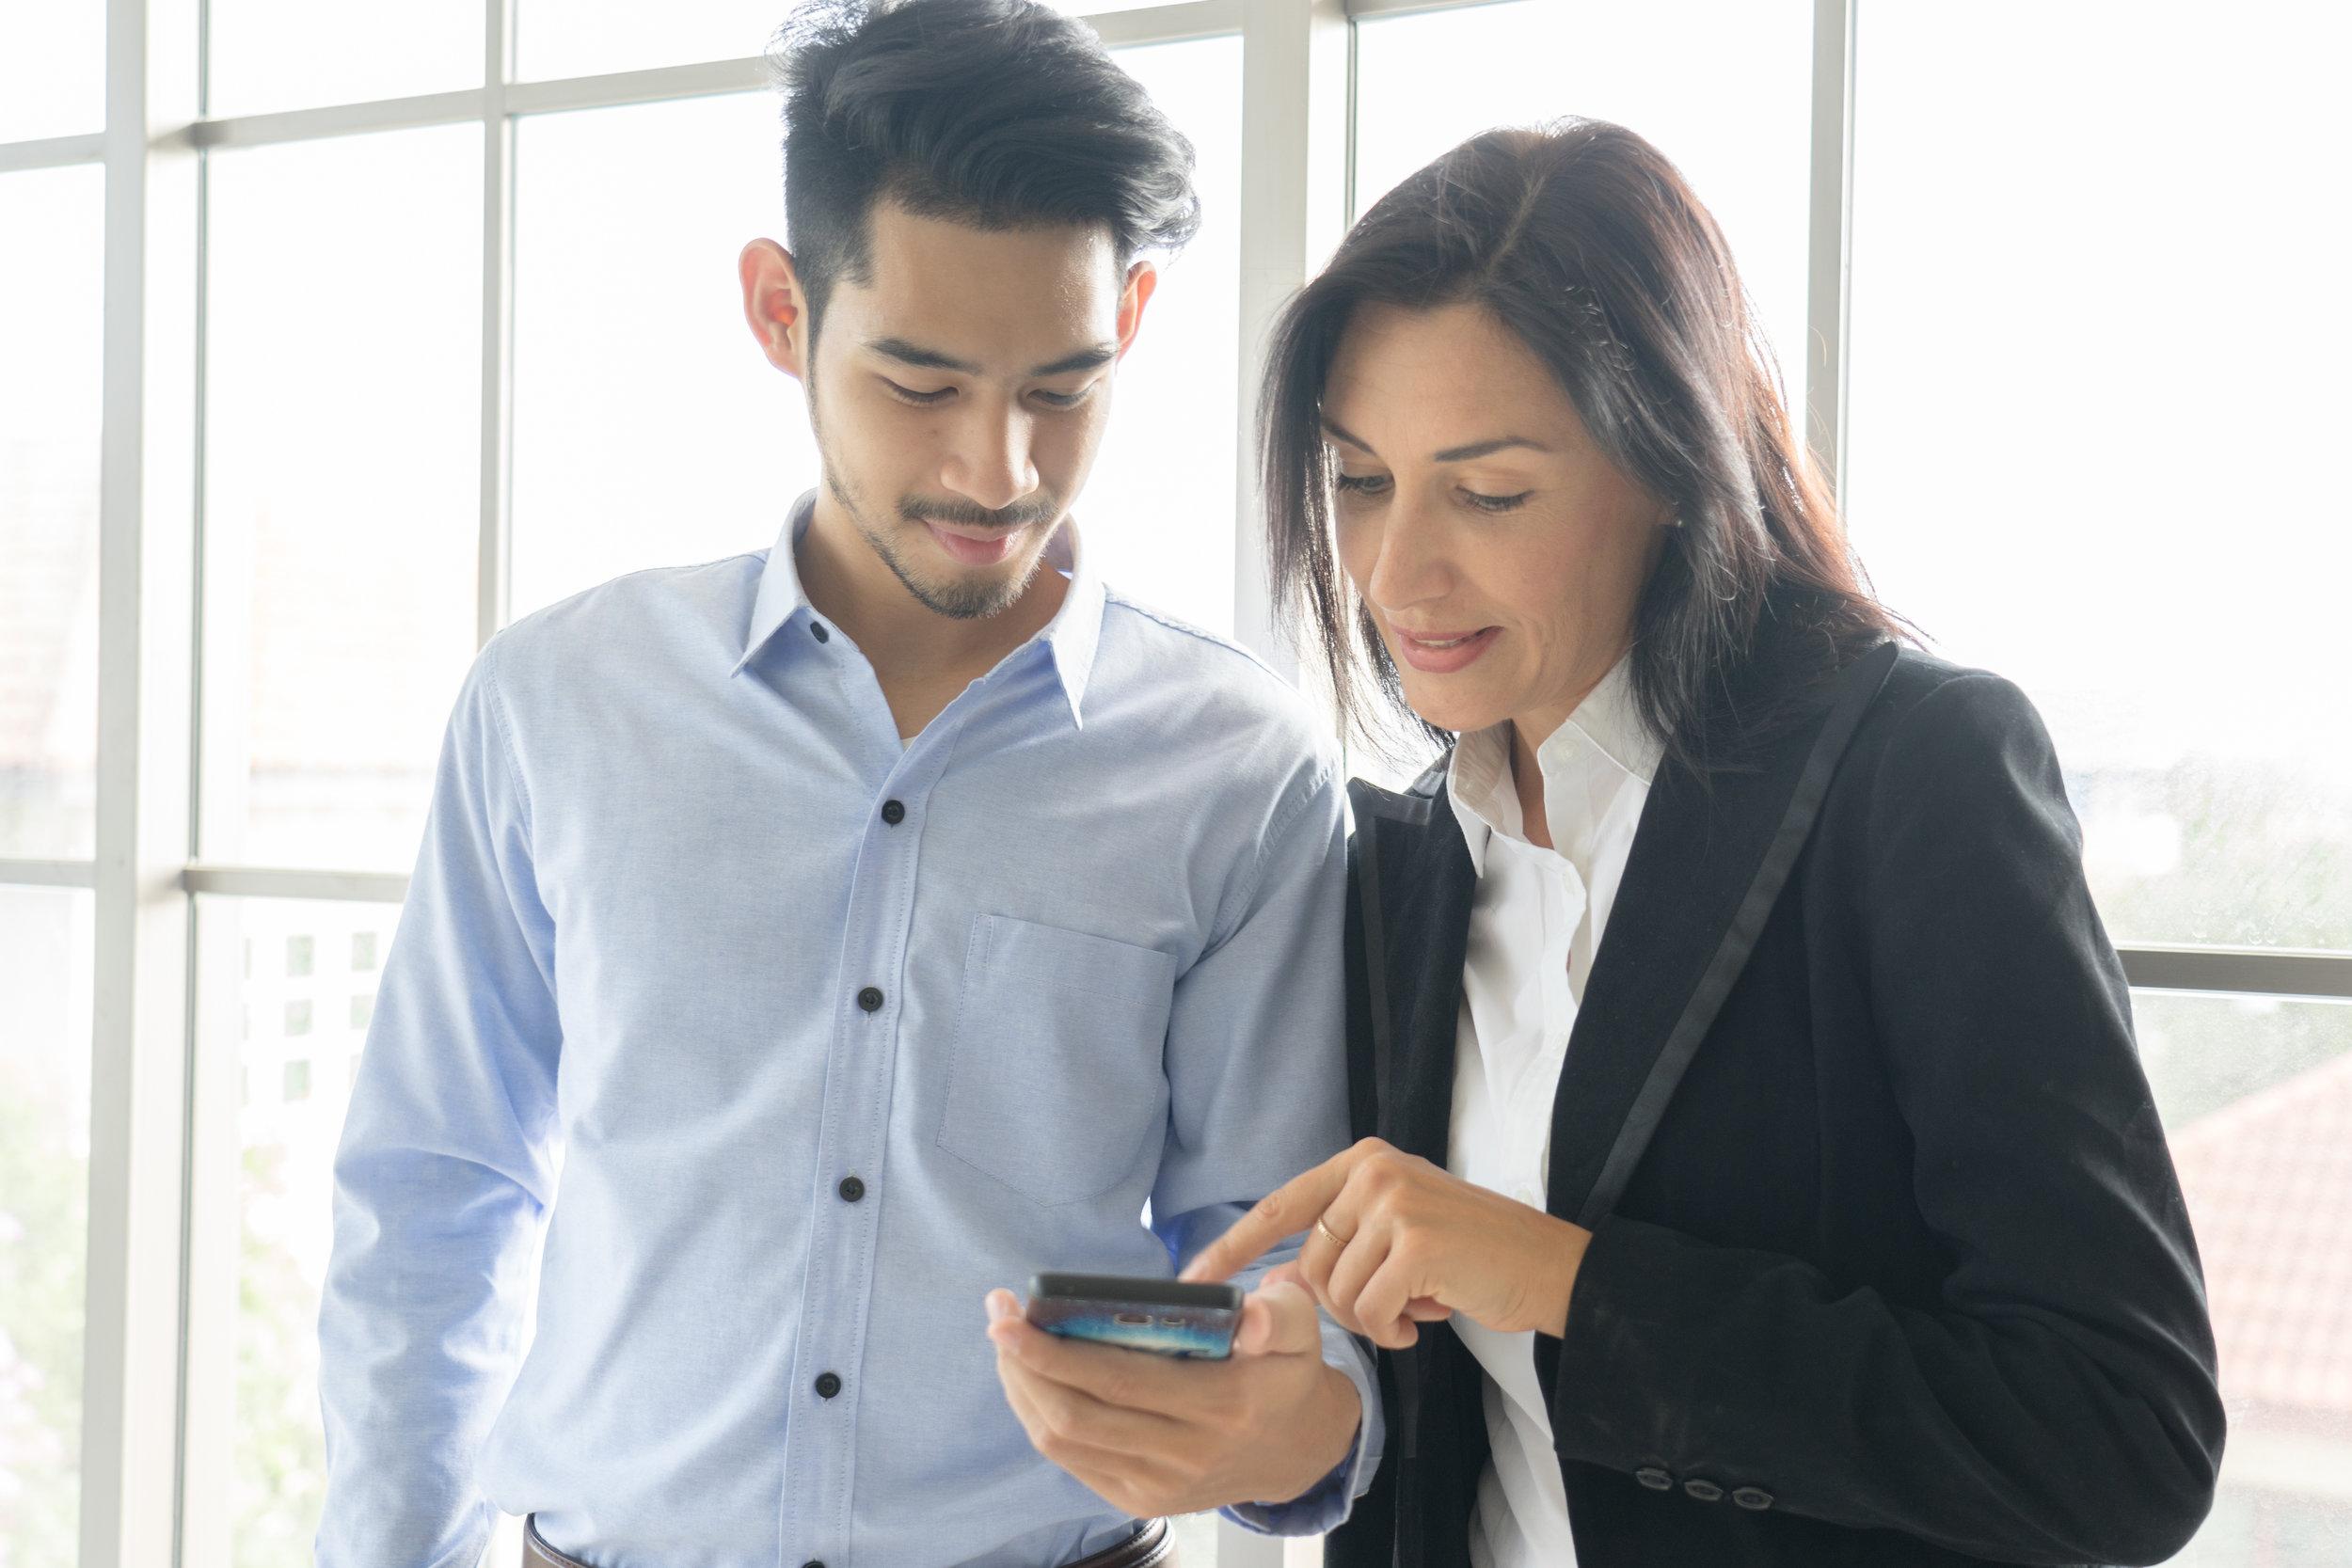 Business man and woman wearing suit, looking smartphone. Open space loft office. Panoramic windows background.